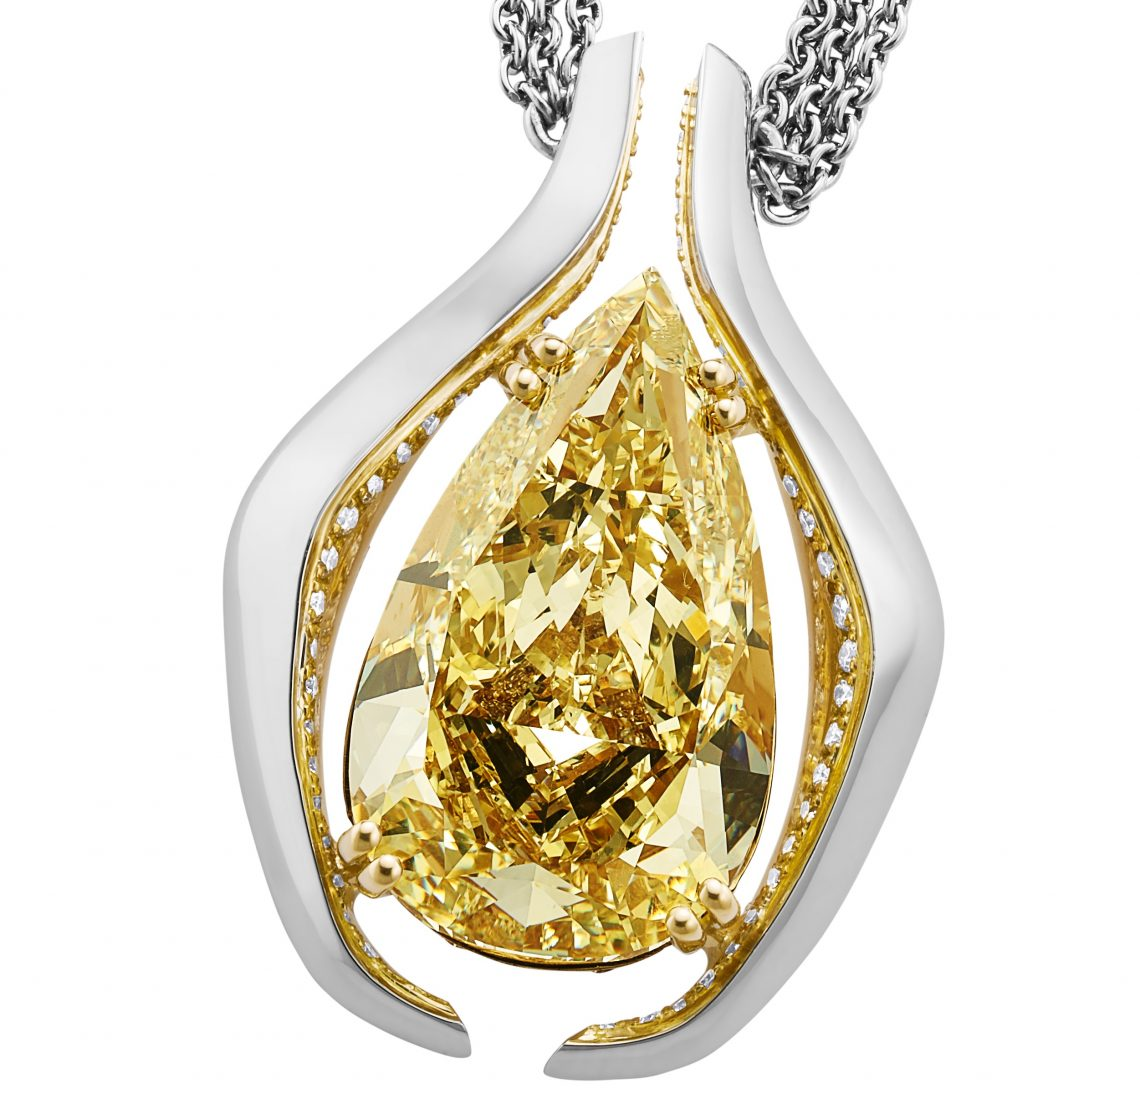 Diamond pendant 1 Bentley Celebrates Centenary with an Exceptional Masterpiece Jewel - EAT LOVE SAVOR International luxury lifestyle magazine and bookazines